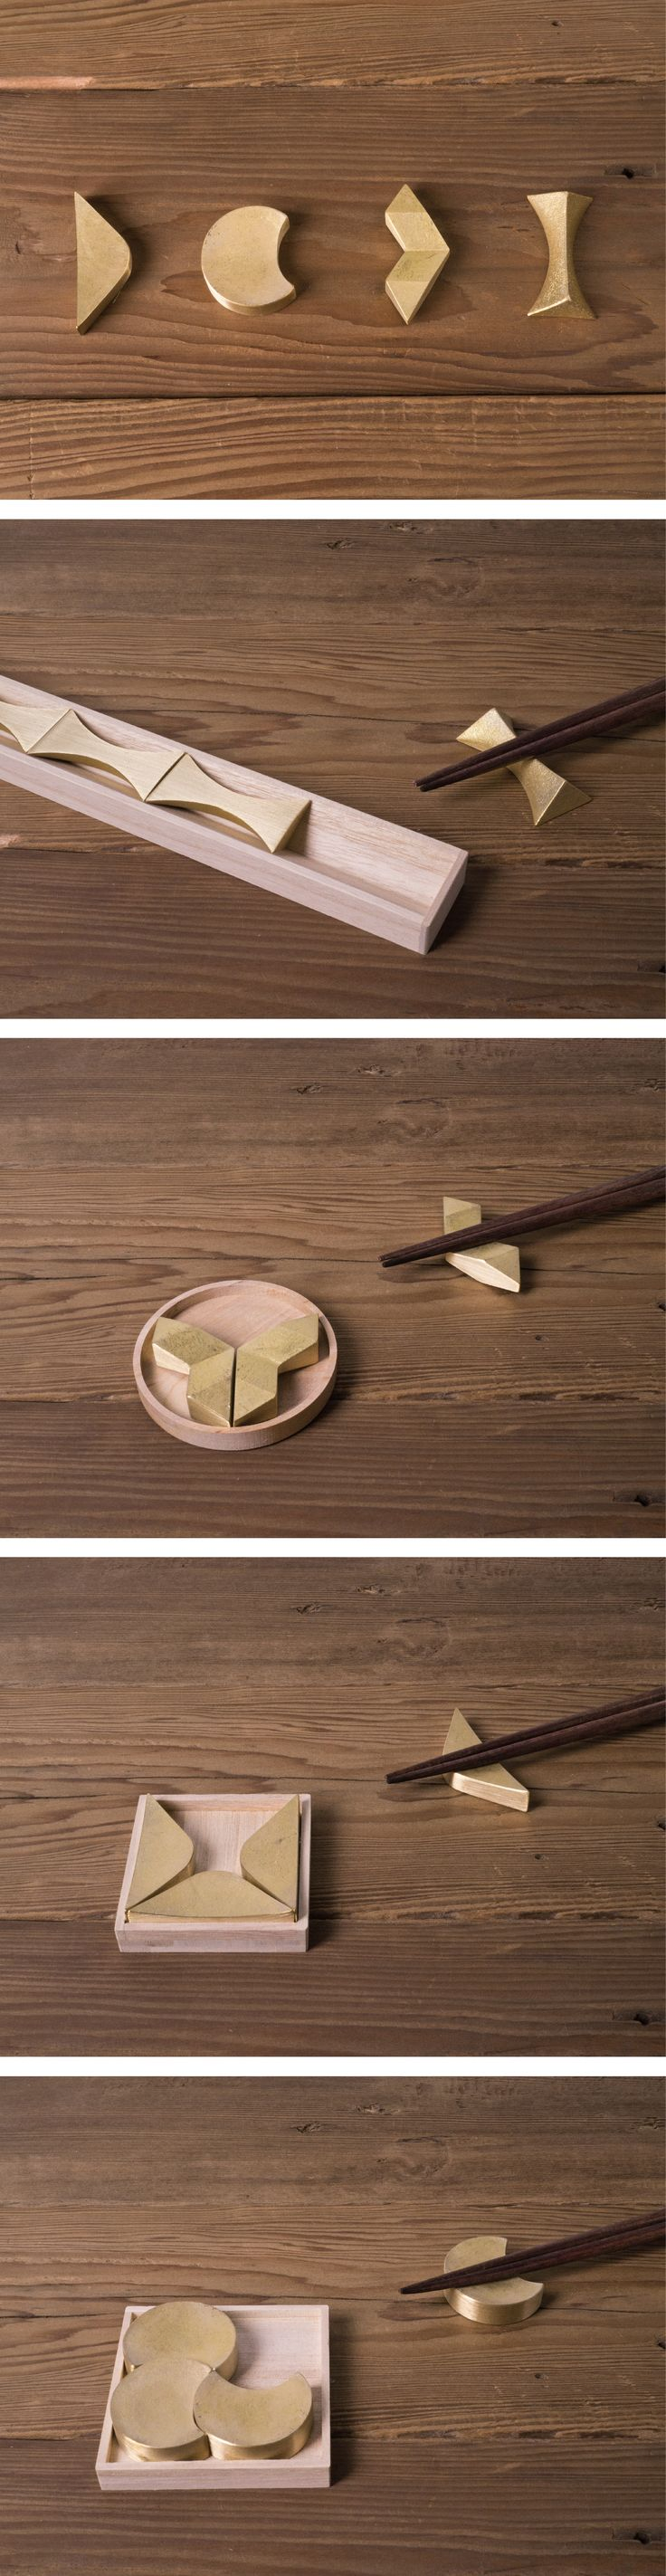 Chopstick Rests by Prime Collection #pinkoi #primecollection